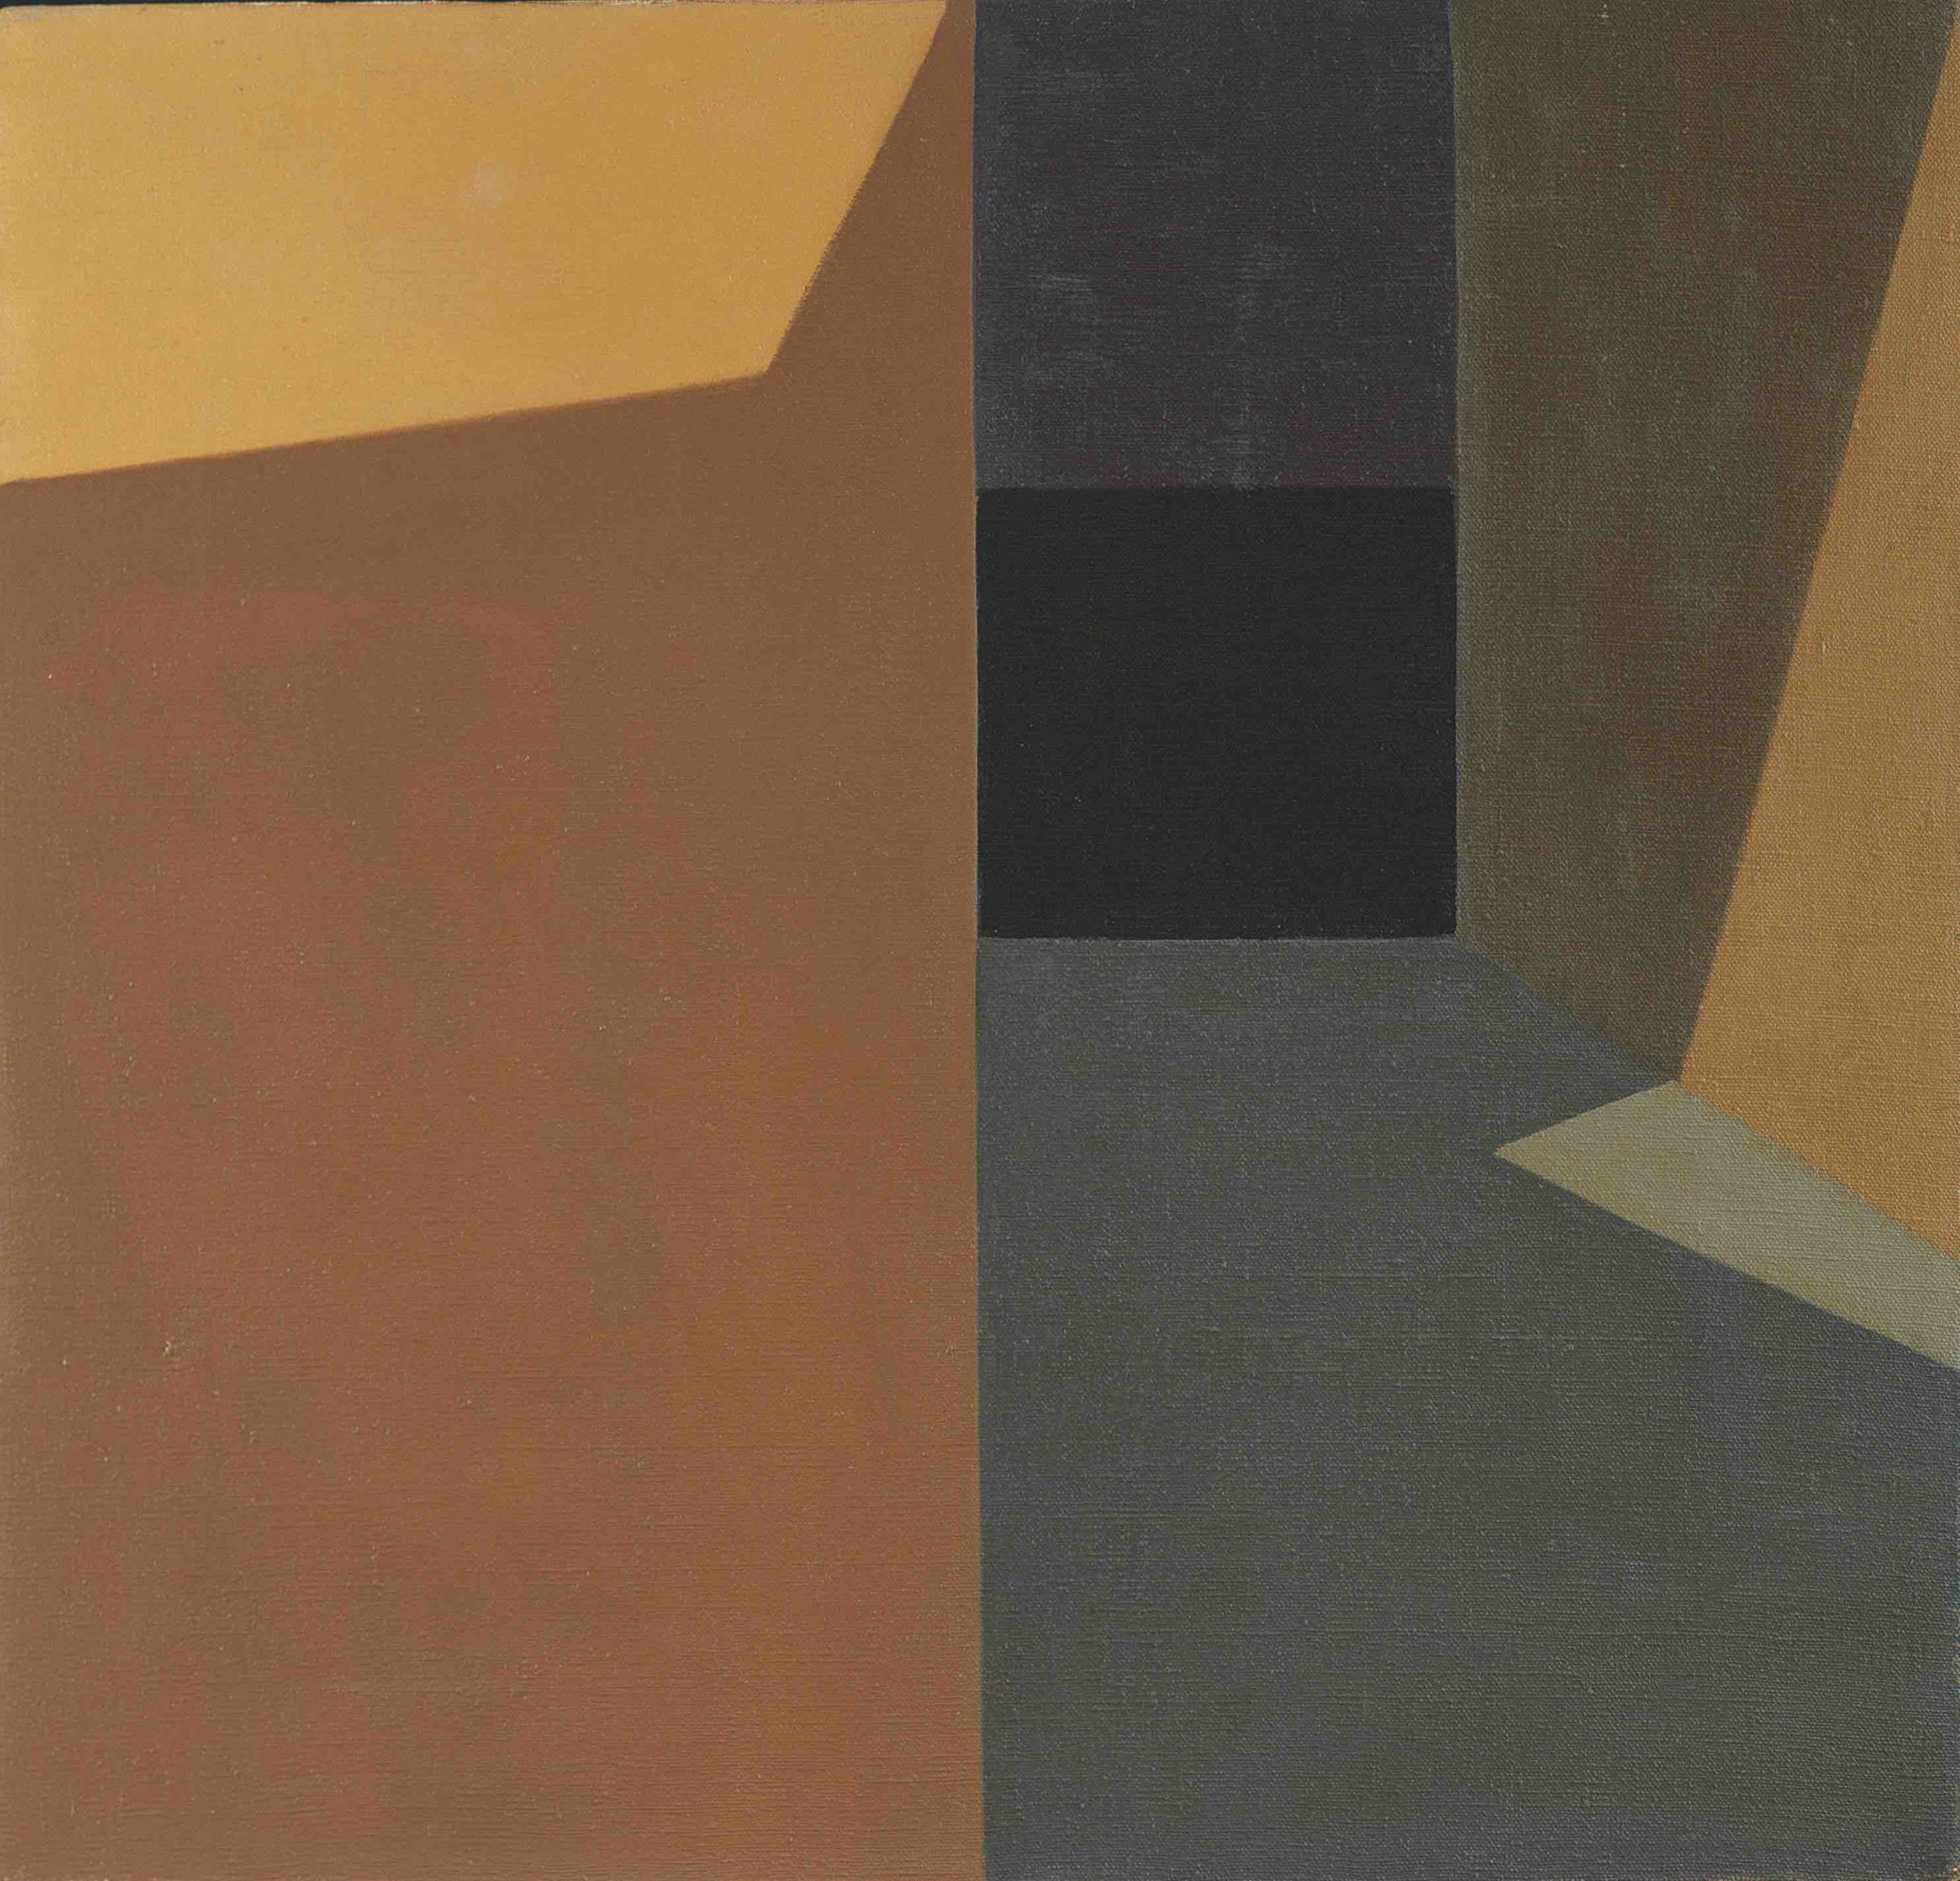 Dark Corridor , 1959  oil on canvas 20 x 21 inches; 50.8 x 53.3 centimeters  $40,000